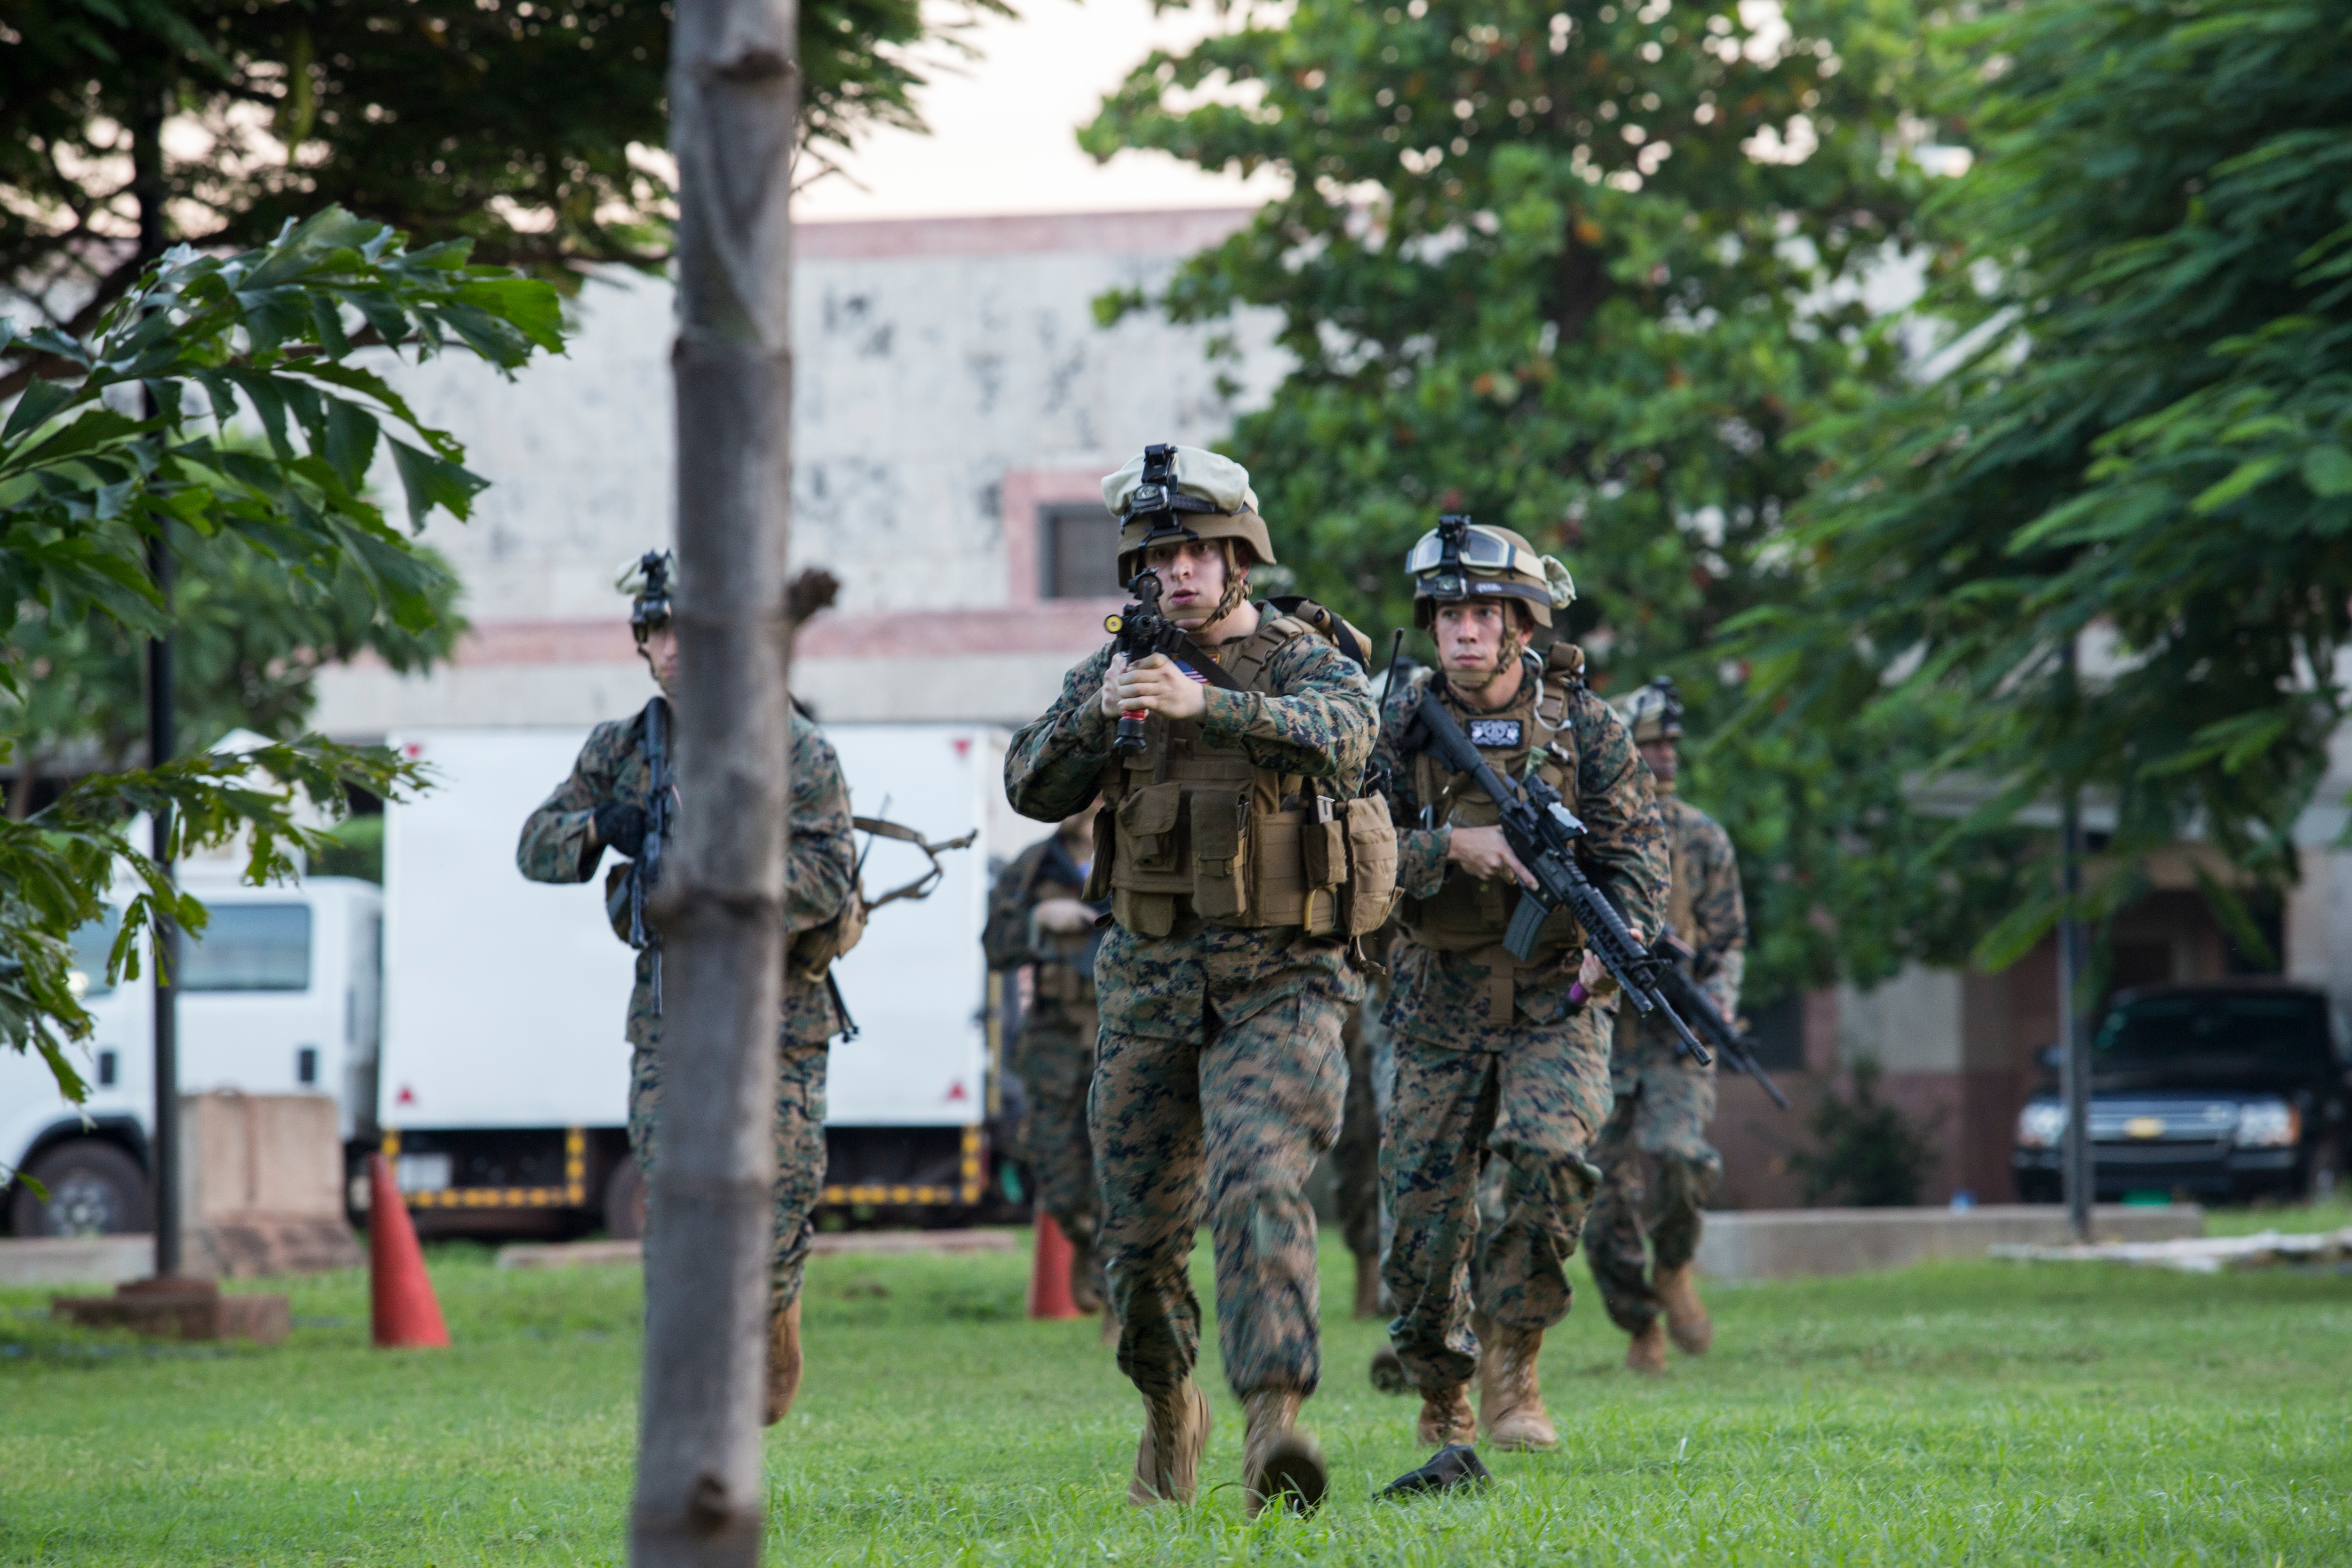 U.S. Marine Security Guard (MSG) watchstanders perform a drill outside of the Marine House near the U.S. Embassy, Bamako, Mali, Aug. 29, 2016. The MSG program, run by the Marine Corps Embassy Security Group, has 175 Marine Corps Detachments throughout the world, providing protection to mission personnel and to prevent the compromise of national security information and equipment at designated diplomatic and consular facilities. (U.S. Marine Corps photo by Staff Sgt. Sarah R. Hickory)